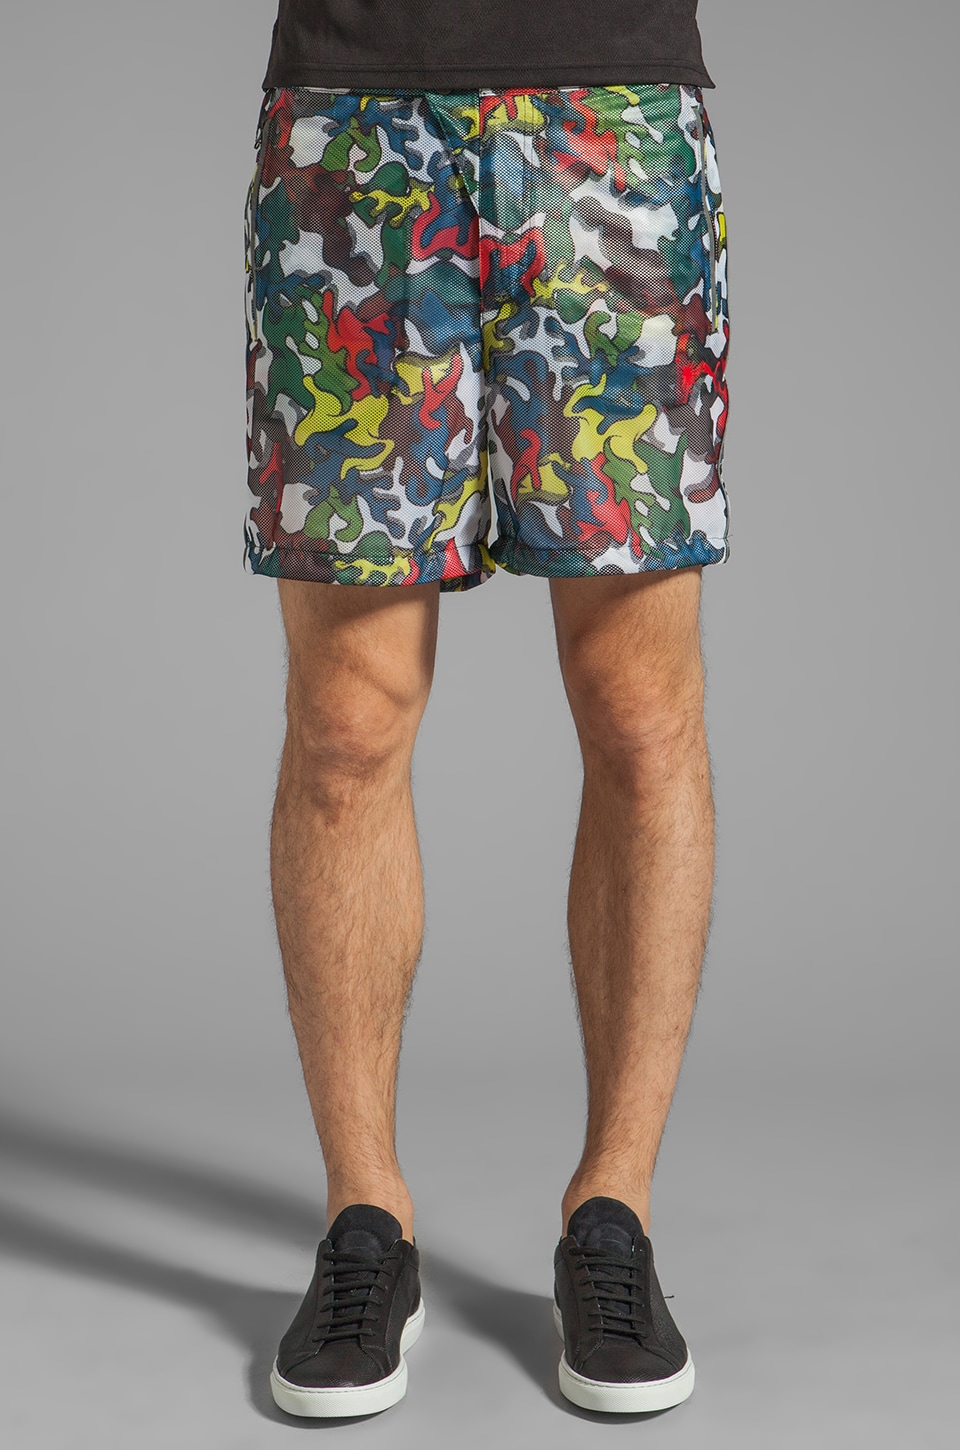 Puma by Mihara Leight Weight Short Pants in Multi Color-Camo Print